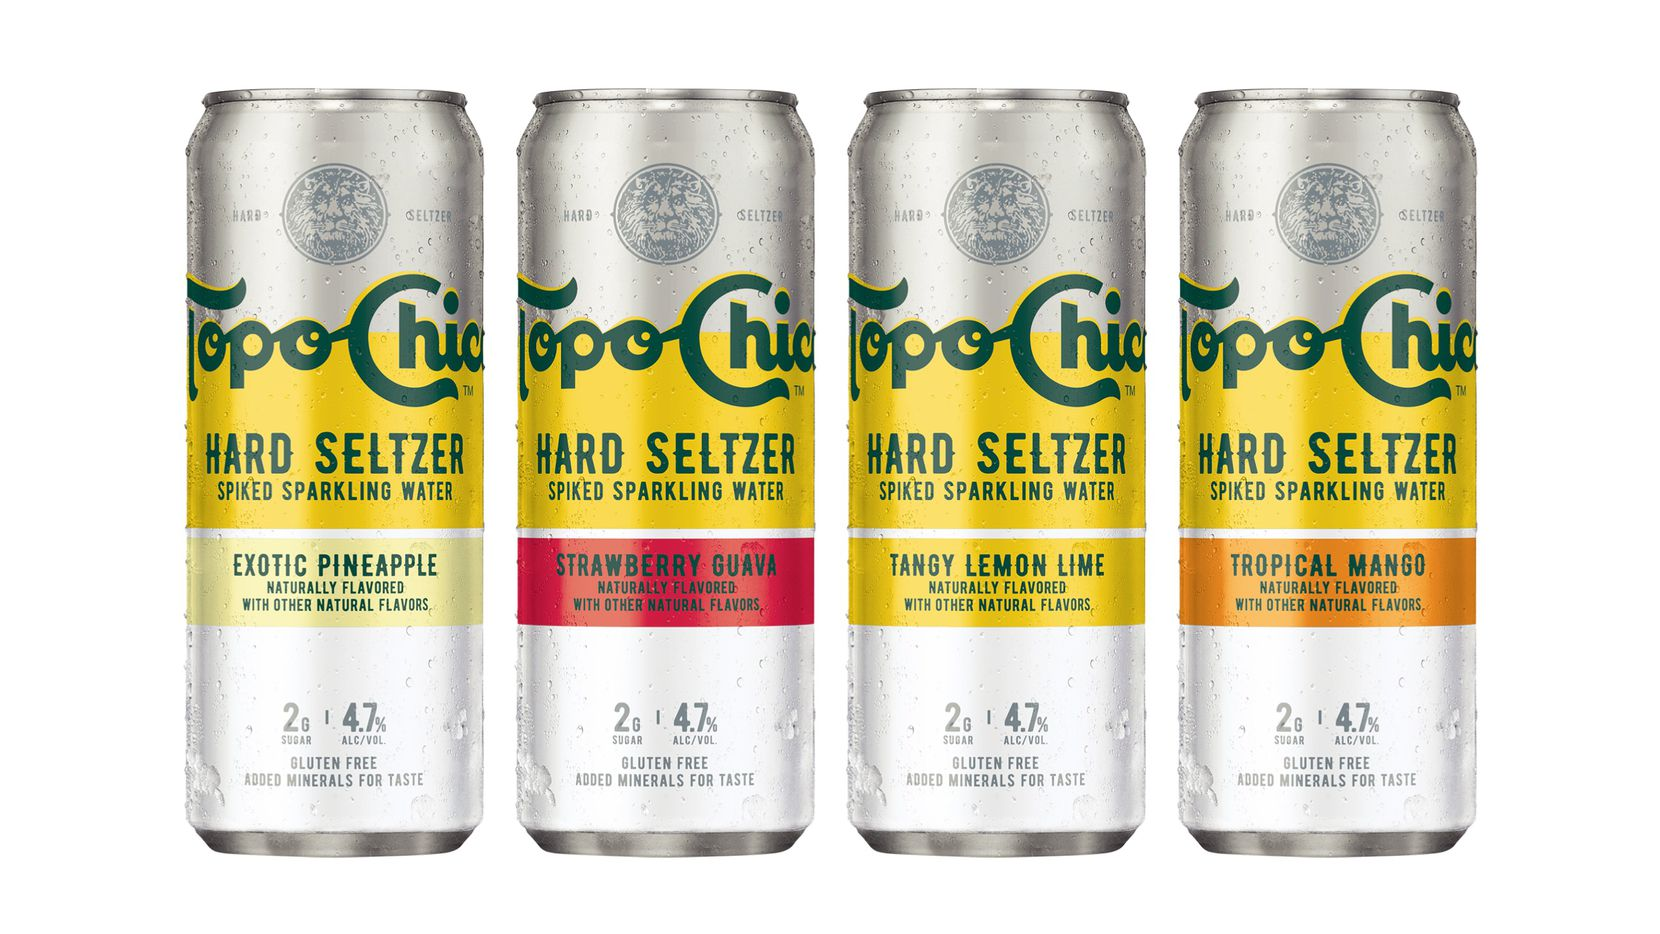 Topo Chico Hard Seltzer comes in four flavors. Notably, there's mango: That's one of the buzziest flavors from Topo Chico Hard Seltzer's main competitor, White Claw.